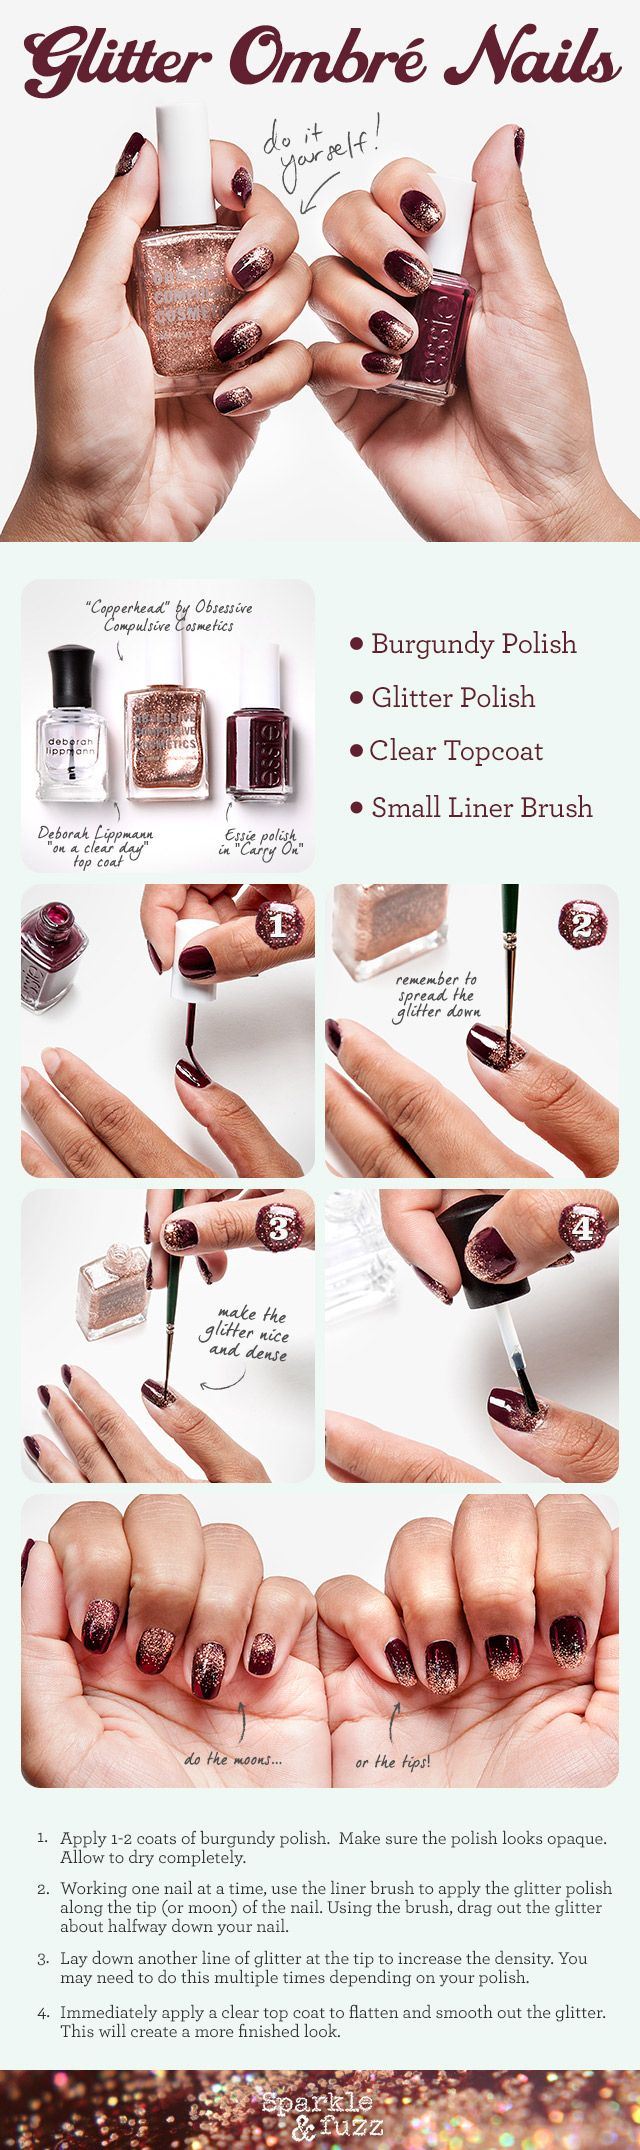 Glitter Ombre Nails DIY - Inspired by The Great Gatsby #Ombre #Nails